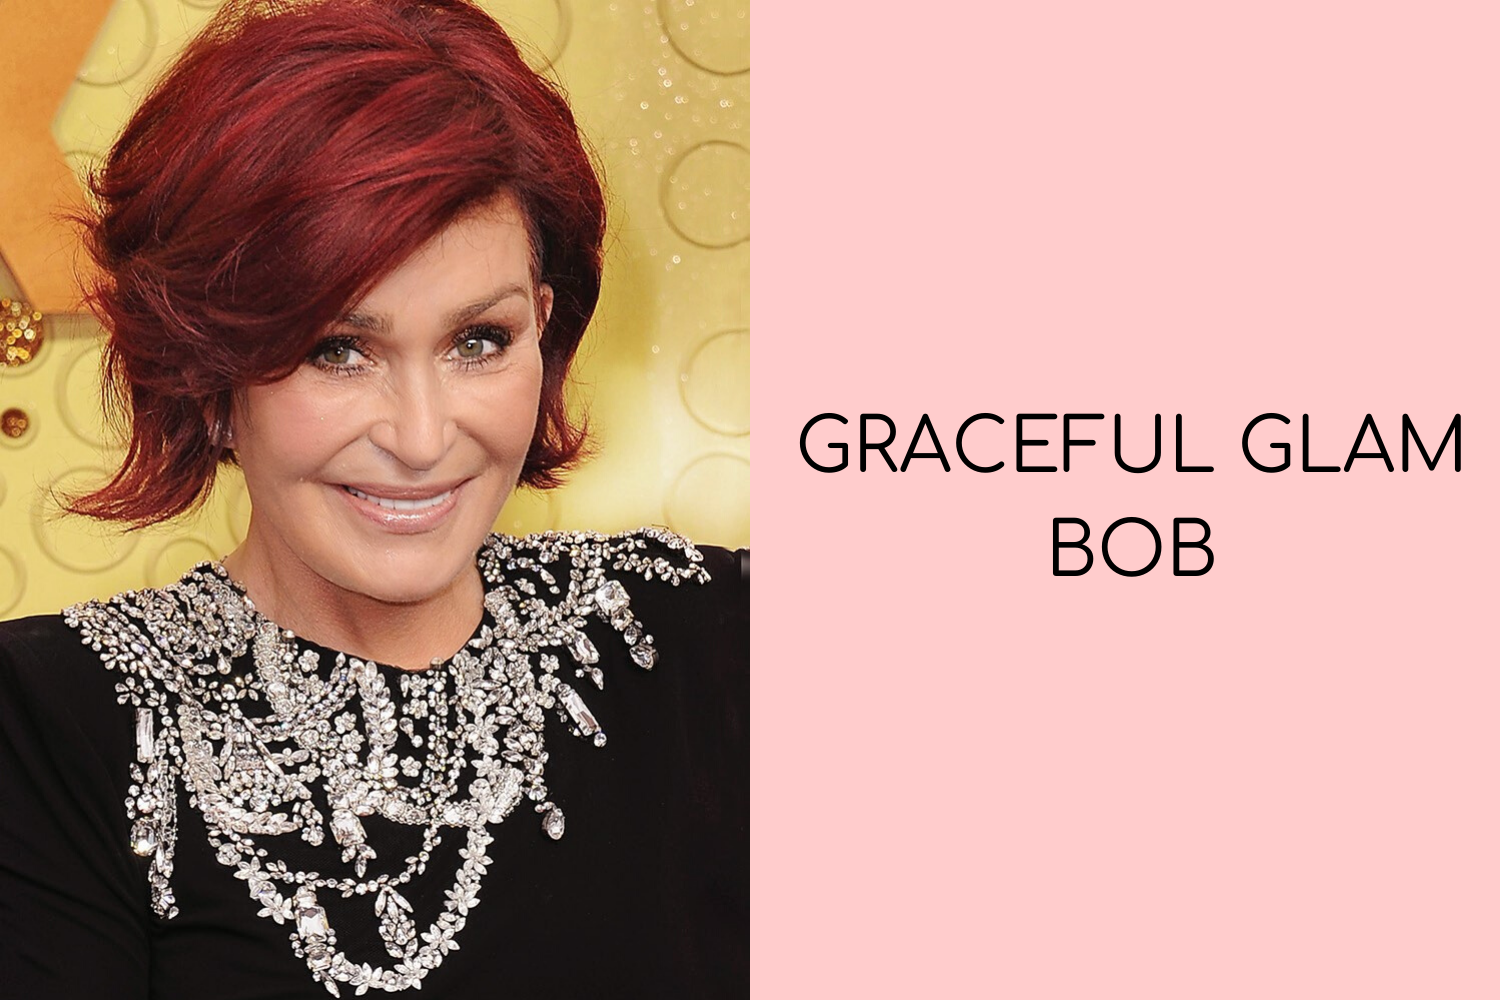 Graceful Glam Bob